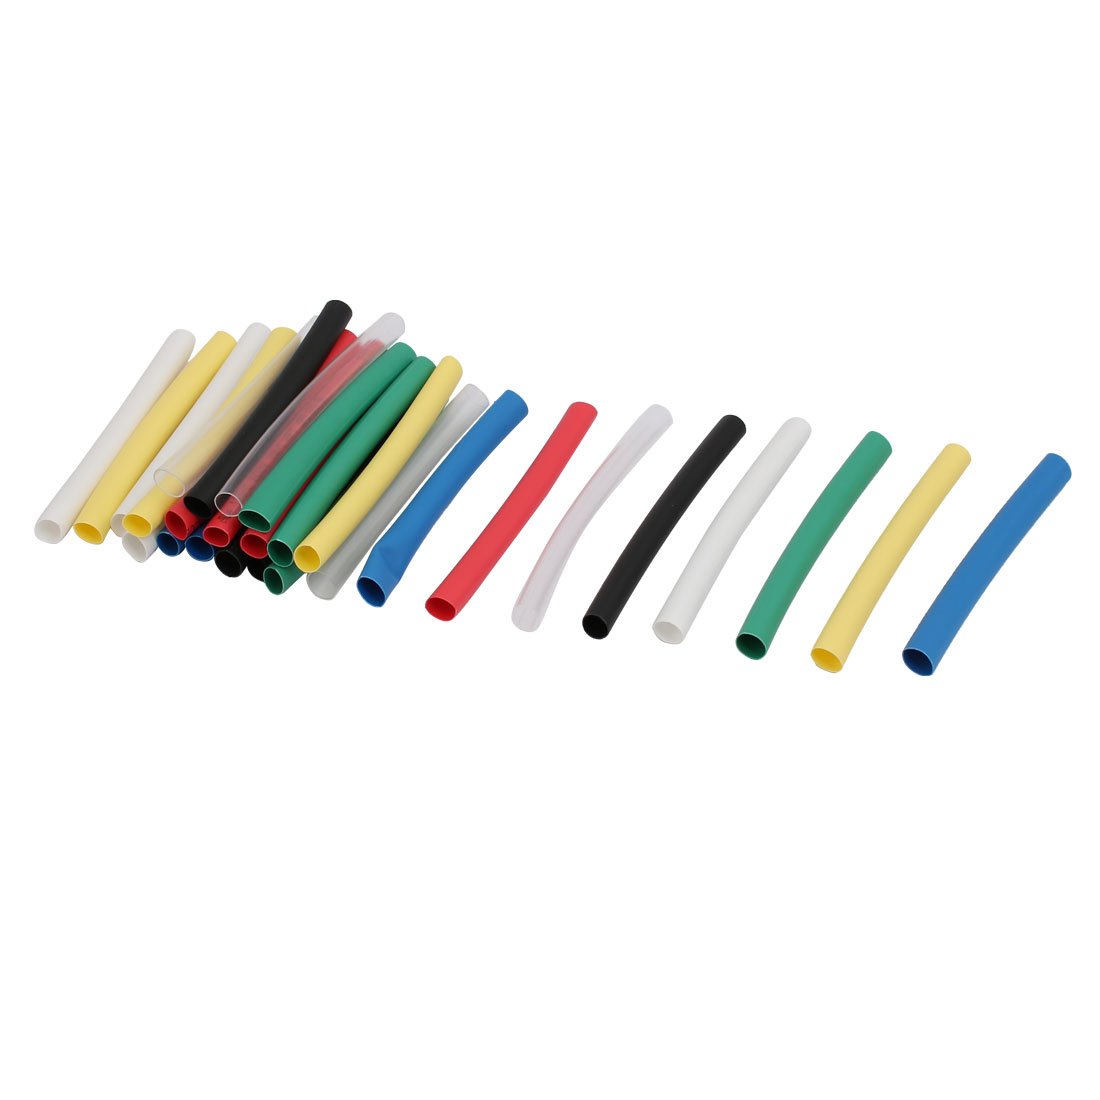 5mmx65mm Multi-Colors Insulated Heat Shrink Tube Sleeving Wrap Wire Kits 140pcs